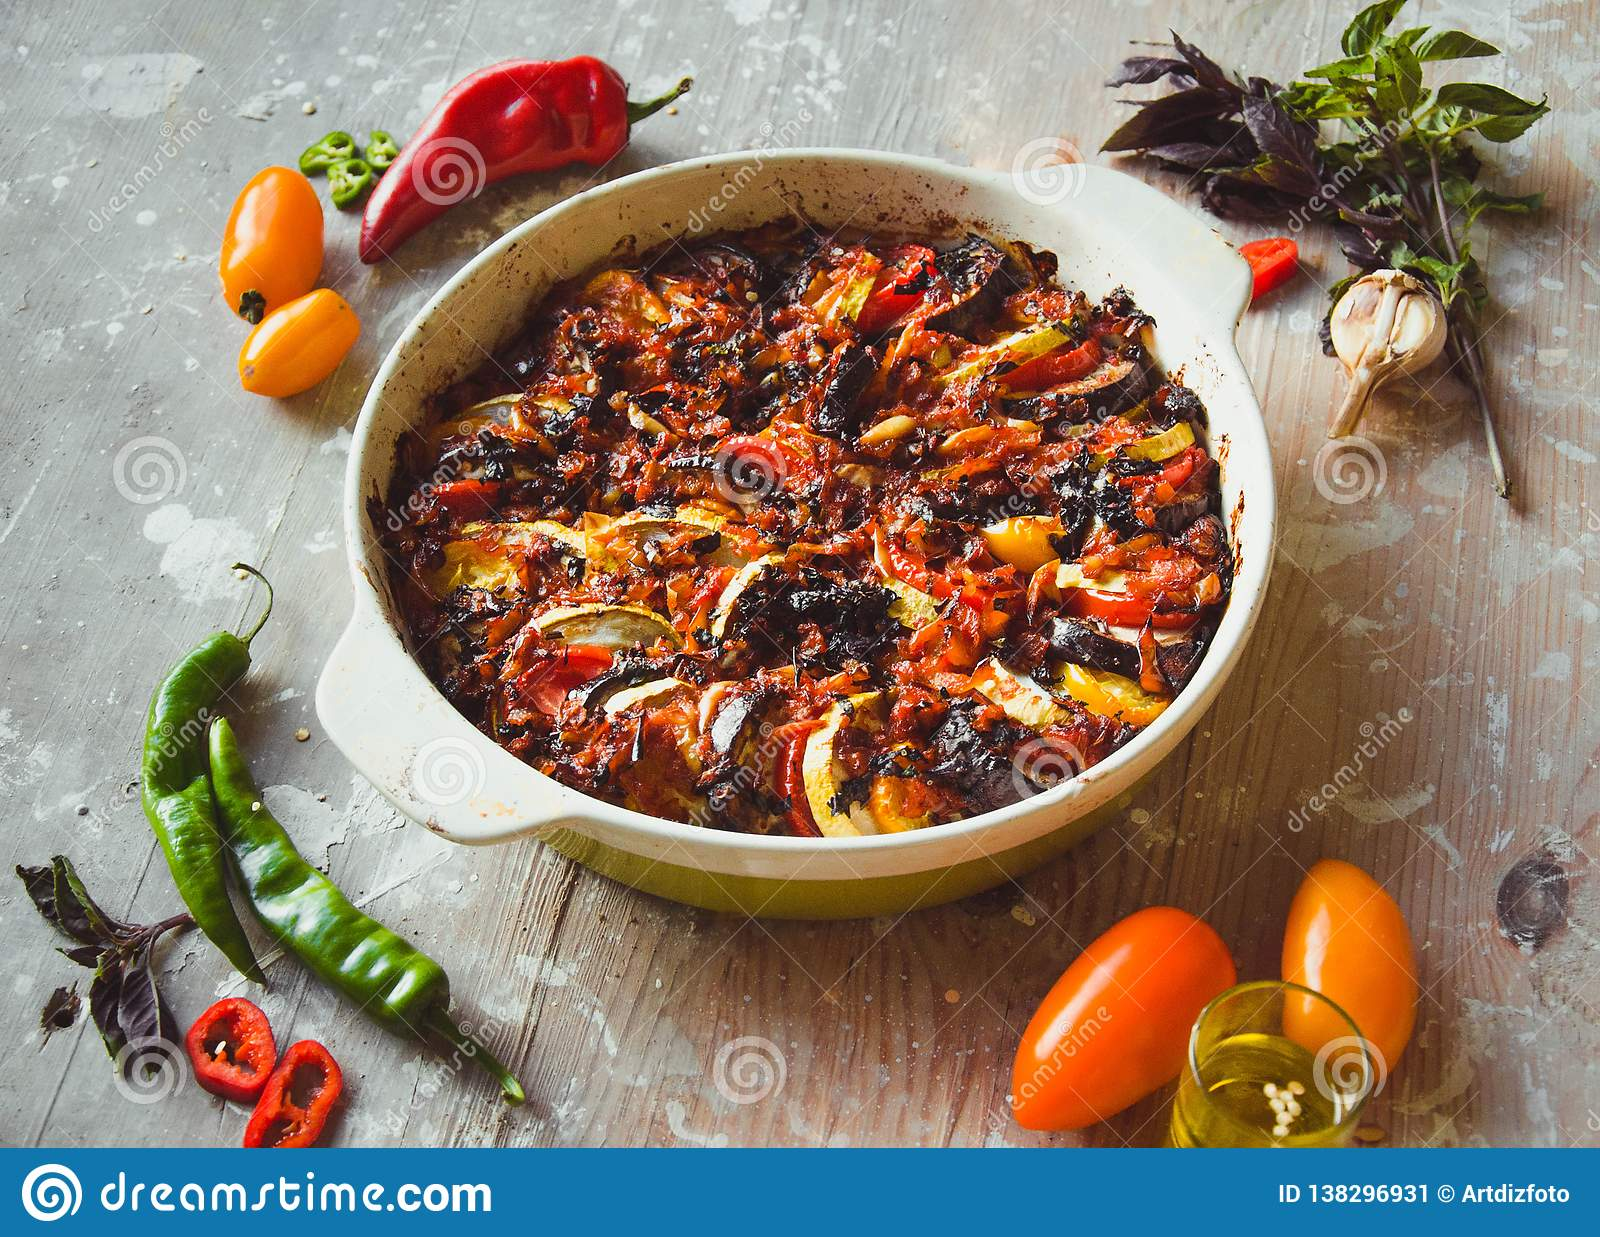 Ratatouille - traditional French vegetable dish cooked in oven. Diet vegetarian vegan food - Ratatouille casserole